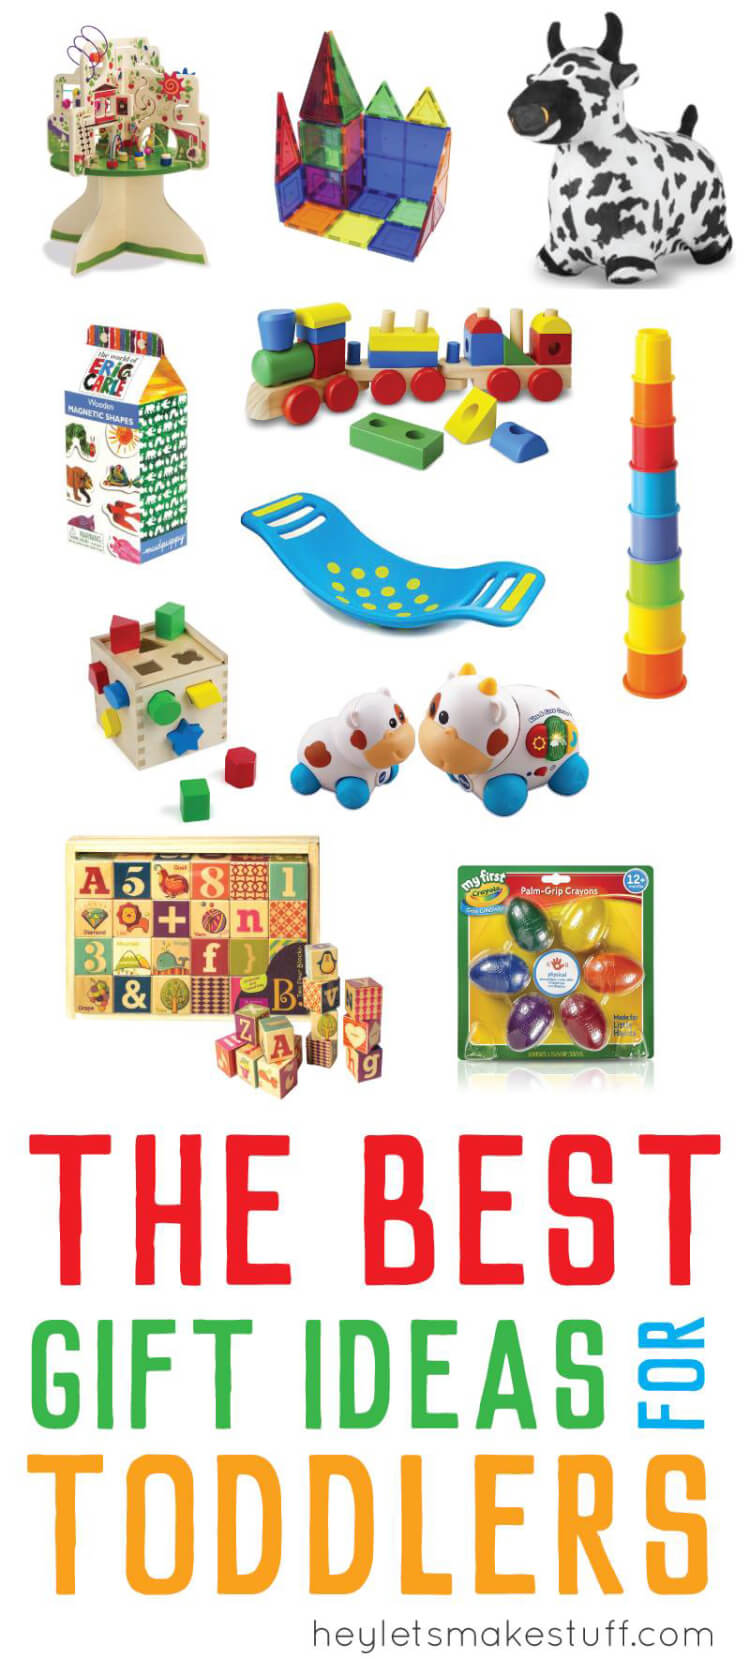 Good Christmas Gifts For Toddlers